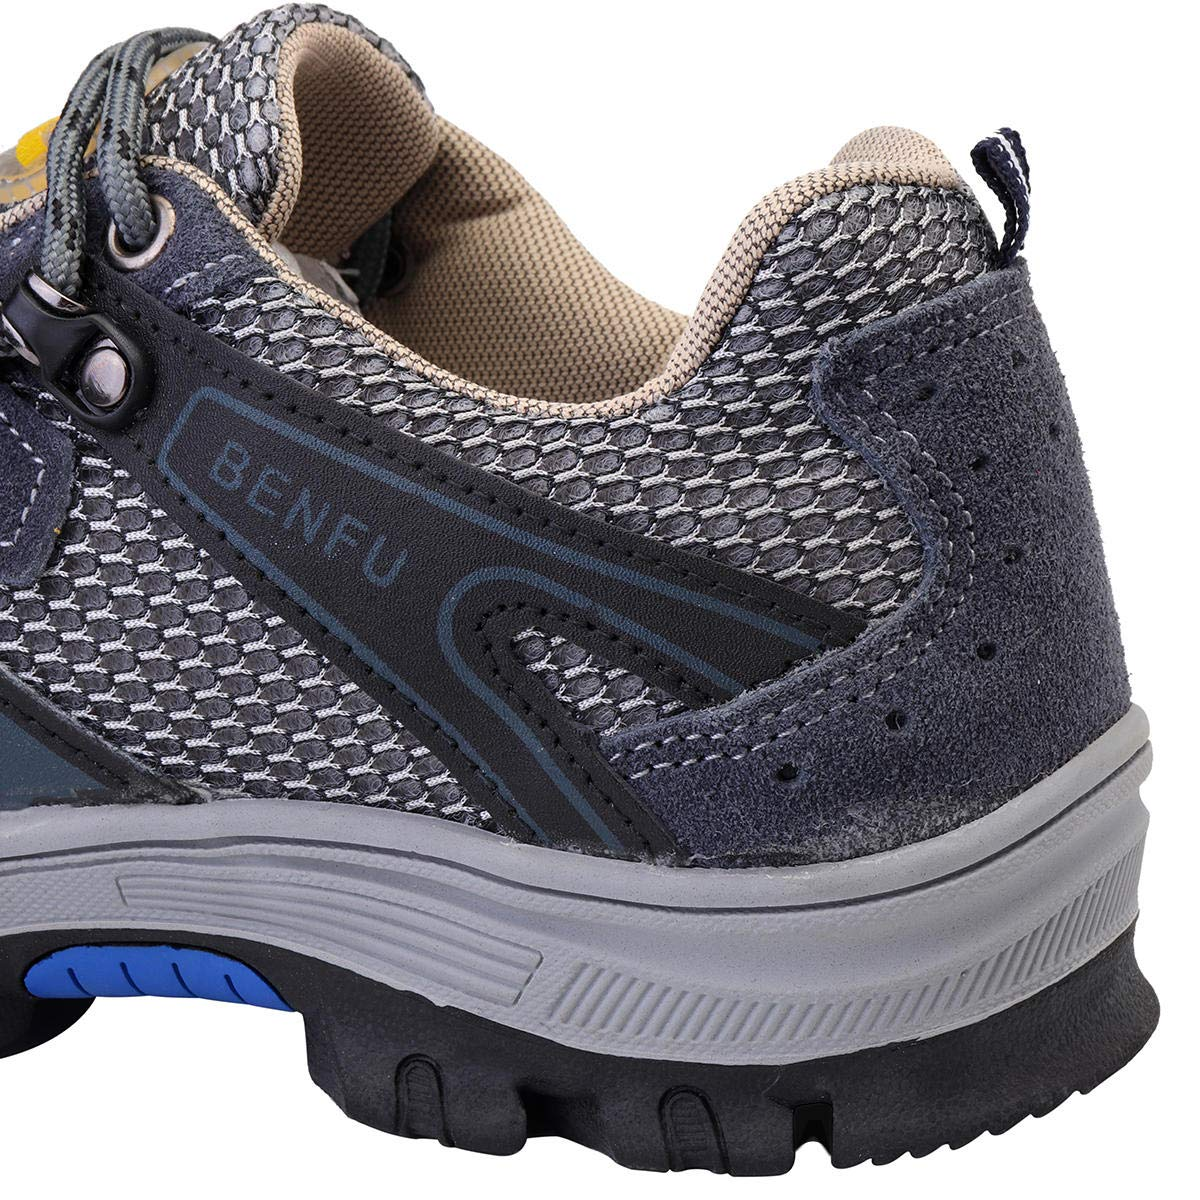 Men's Safety Shoes Steel Toe Work Sneakers Slip Resistant Breathable Hiking Climbing Shoes - 7.5 by Anddoa (Image #4)